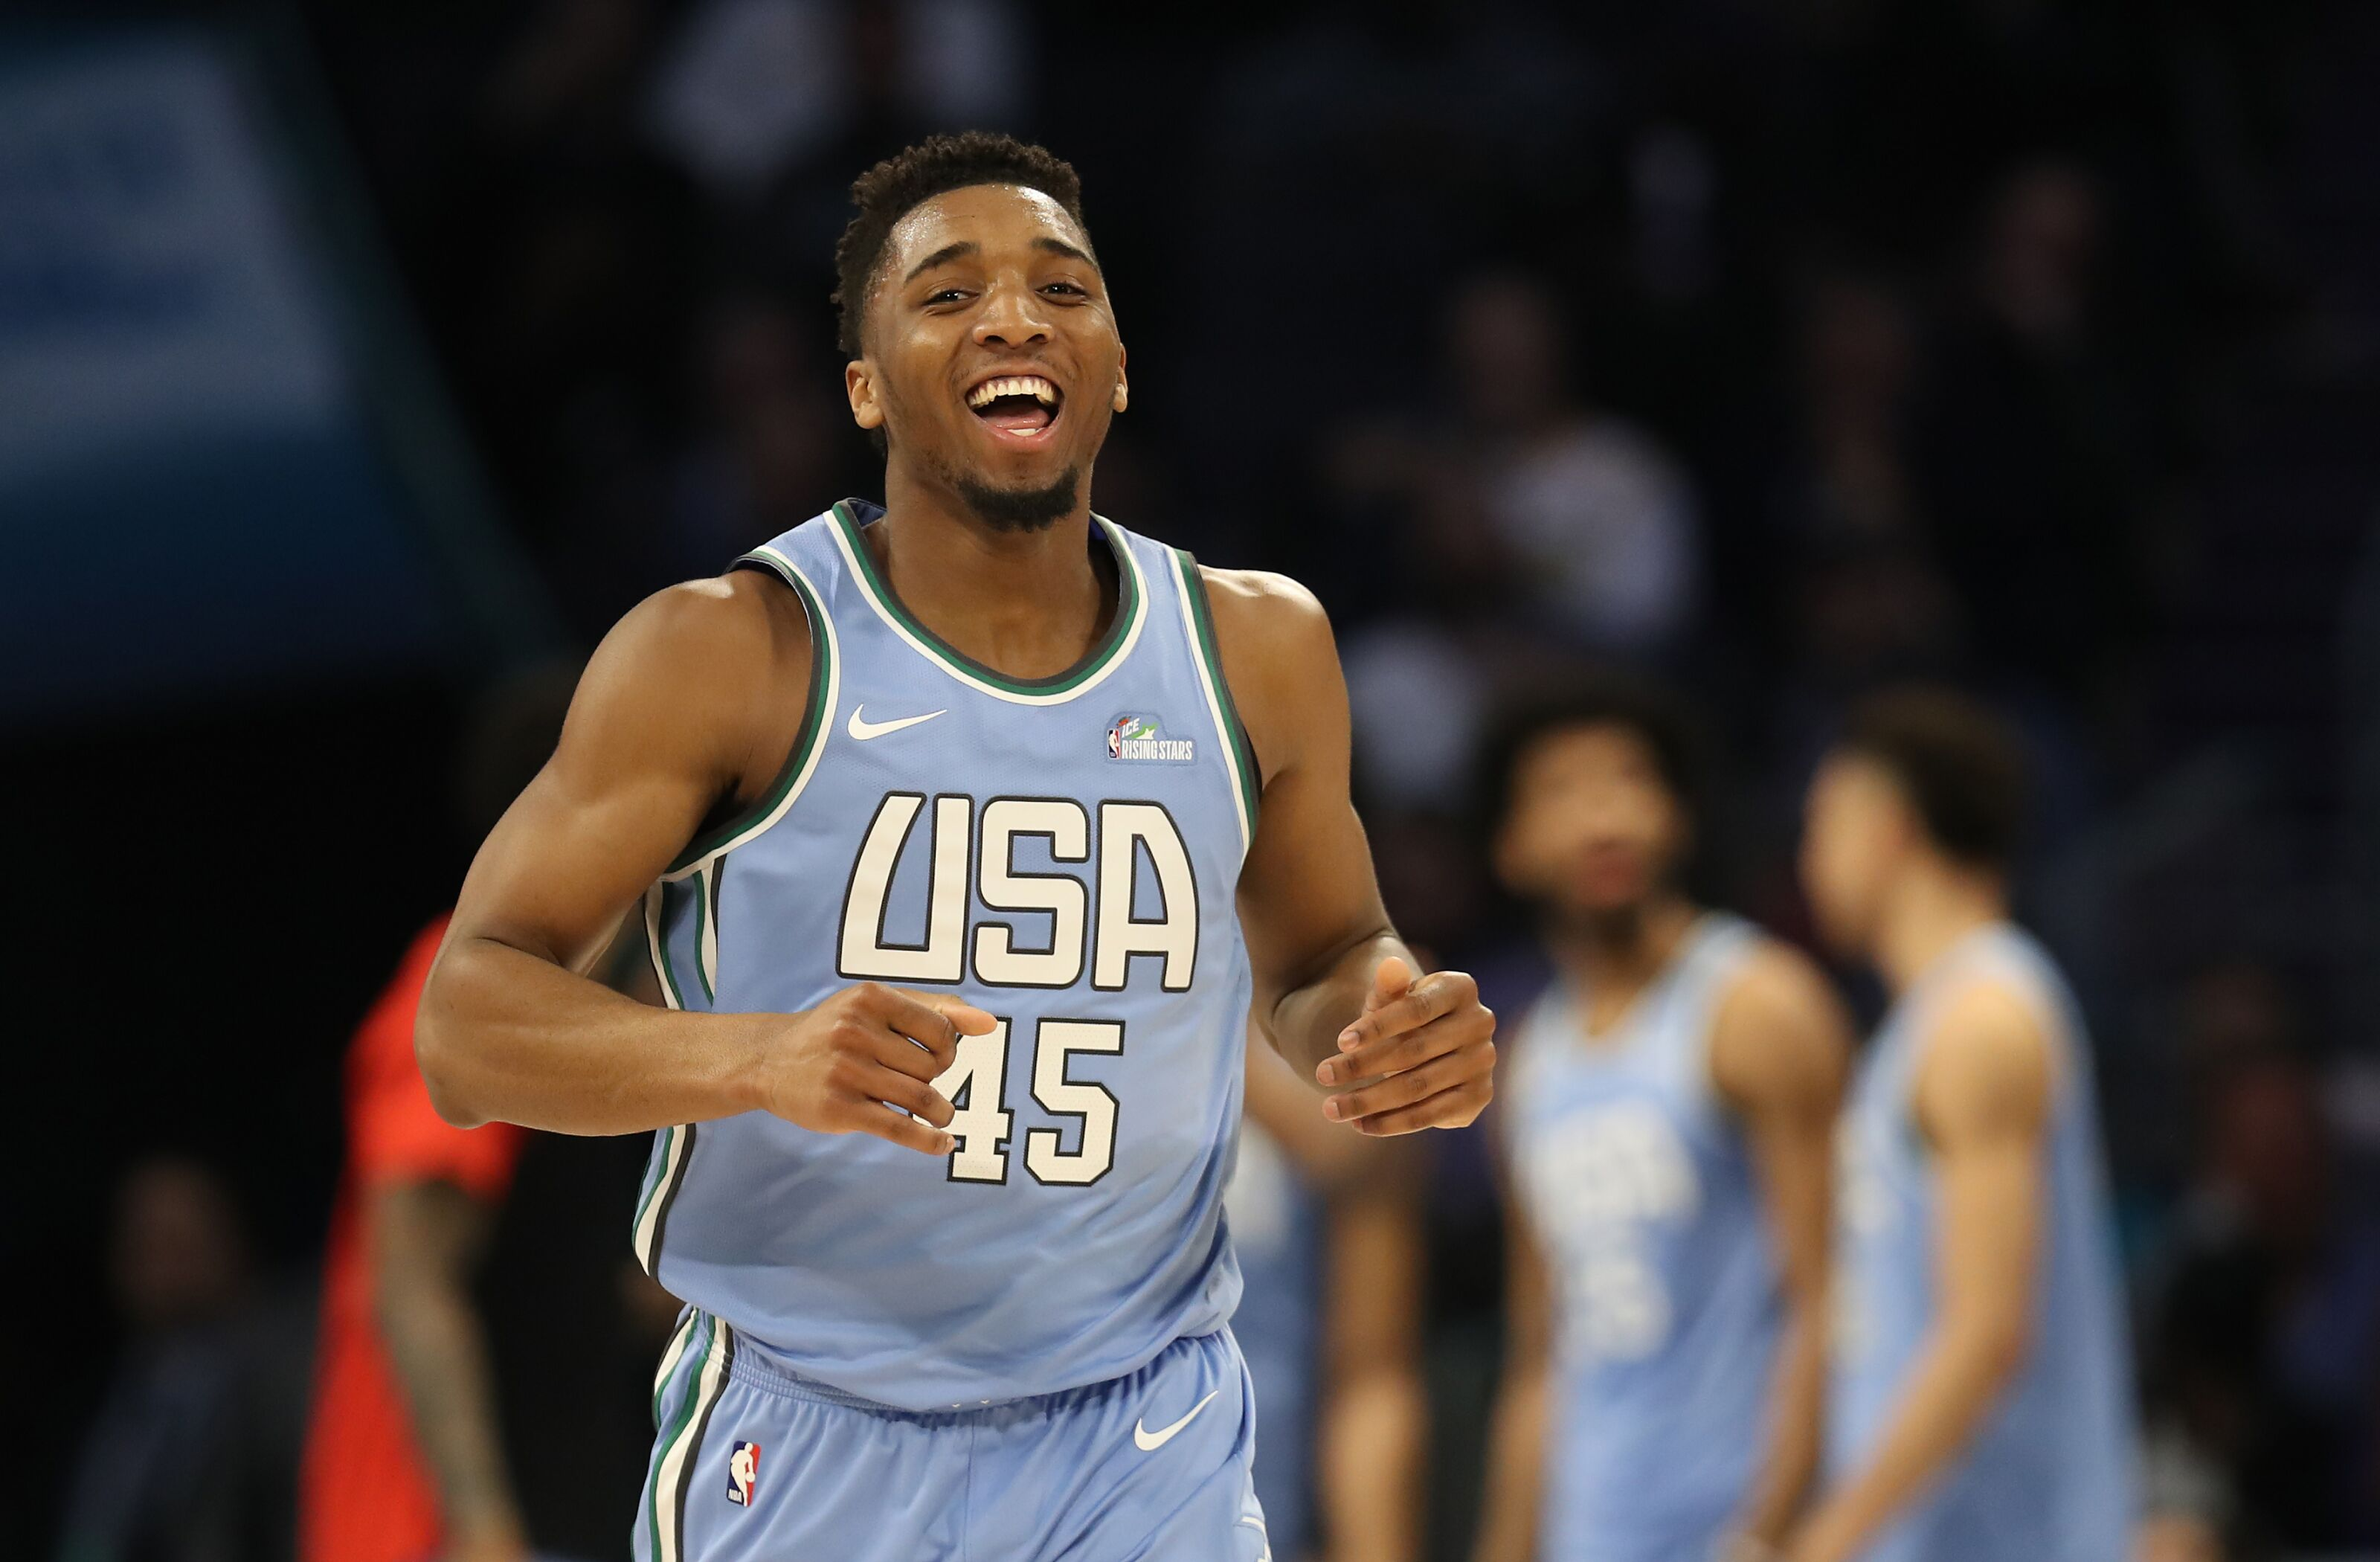 """Utah Jazz: TNT's Kenny Smith calls Mitchell """"Should-have-been All-Star"""""""